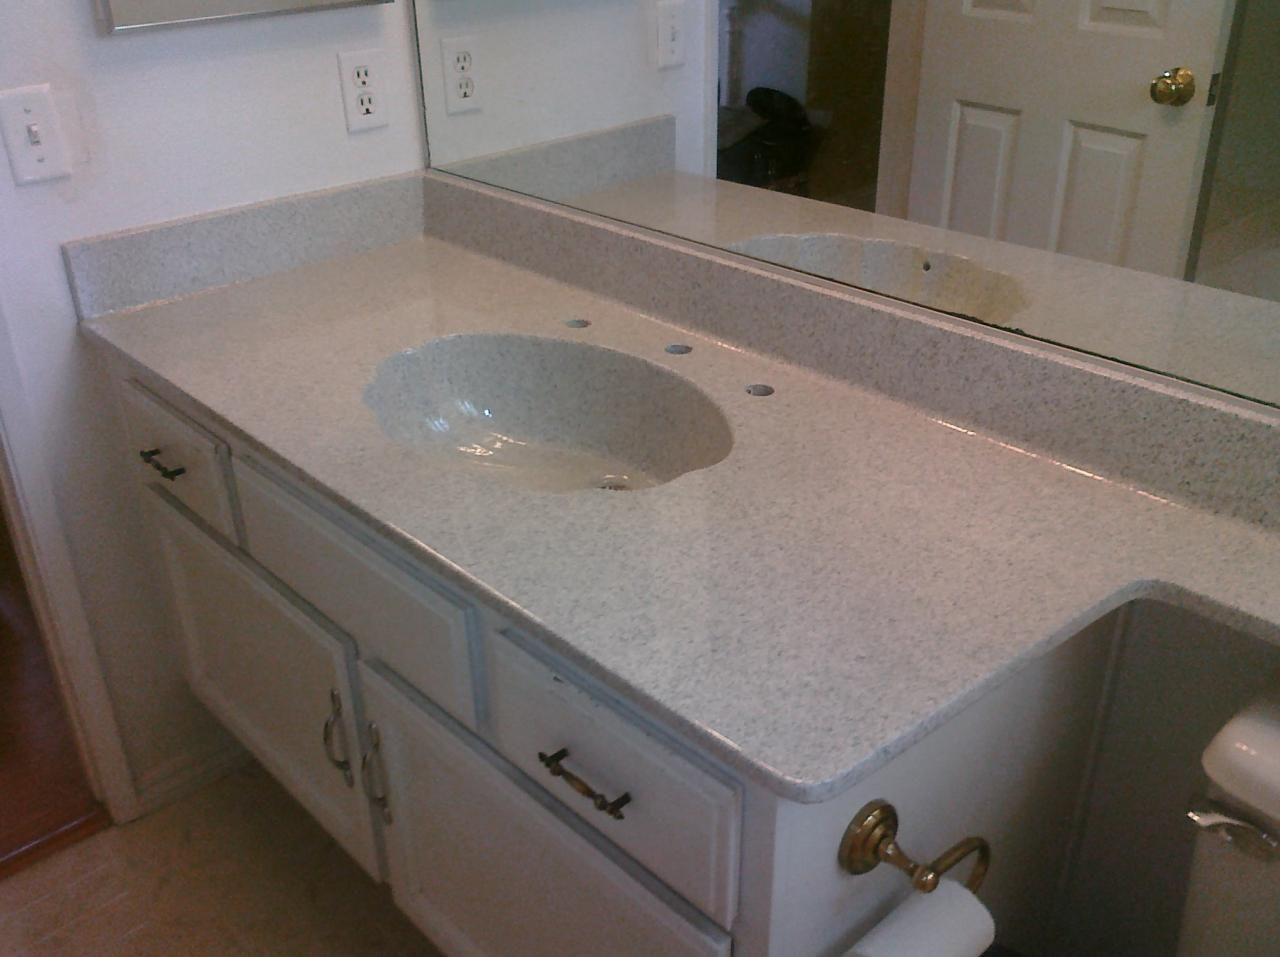 Cultured marble kitchen countertops - Pkb Reglazing Cultured Marble Countertop Sink Bo Reglazed